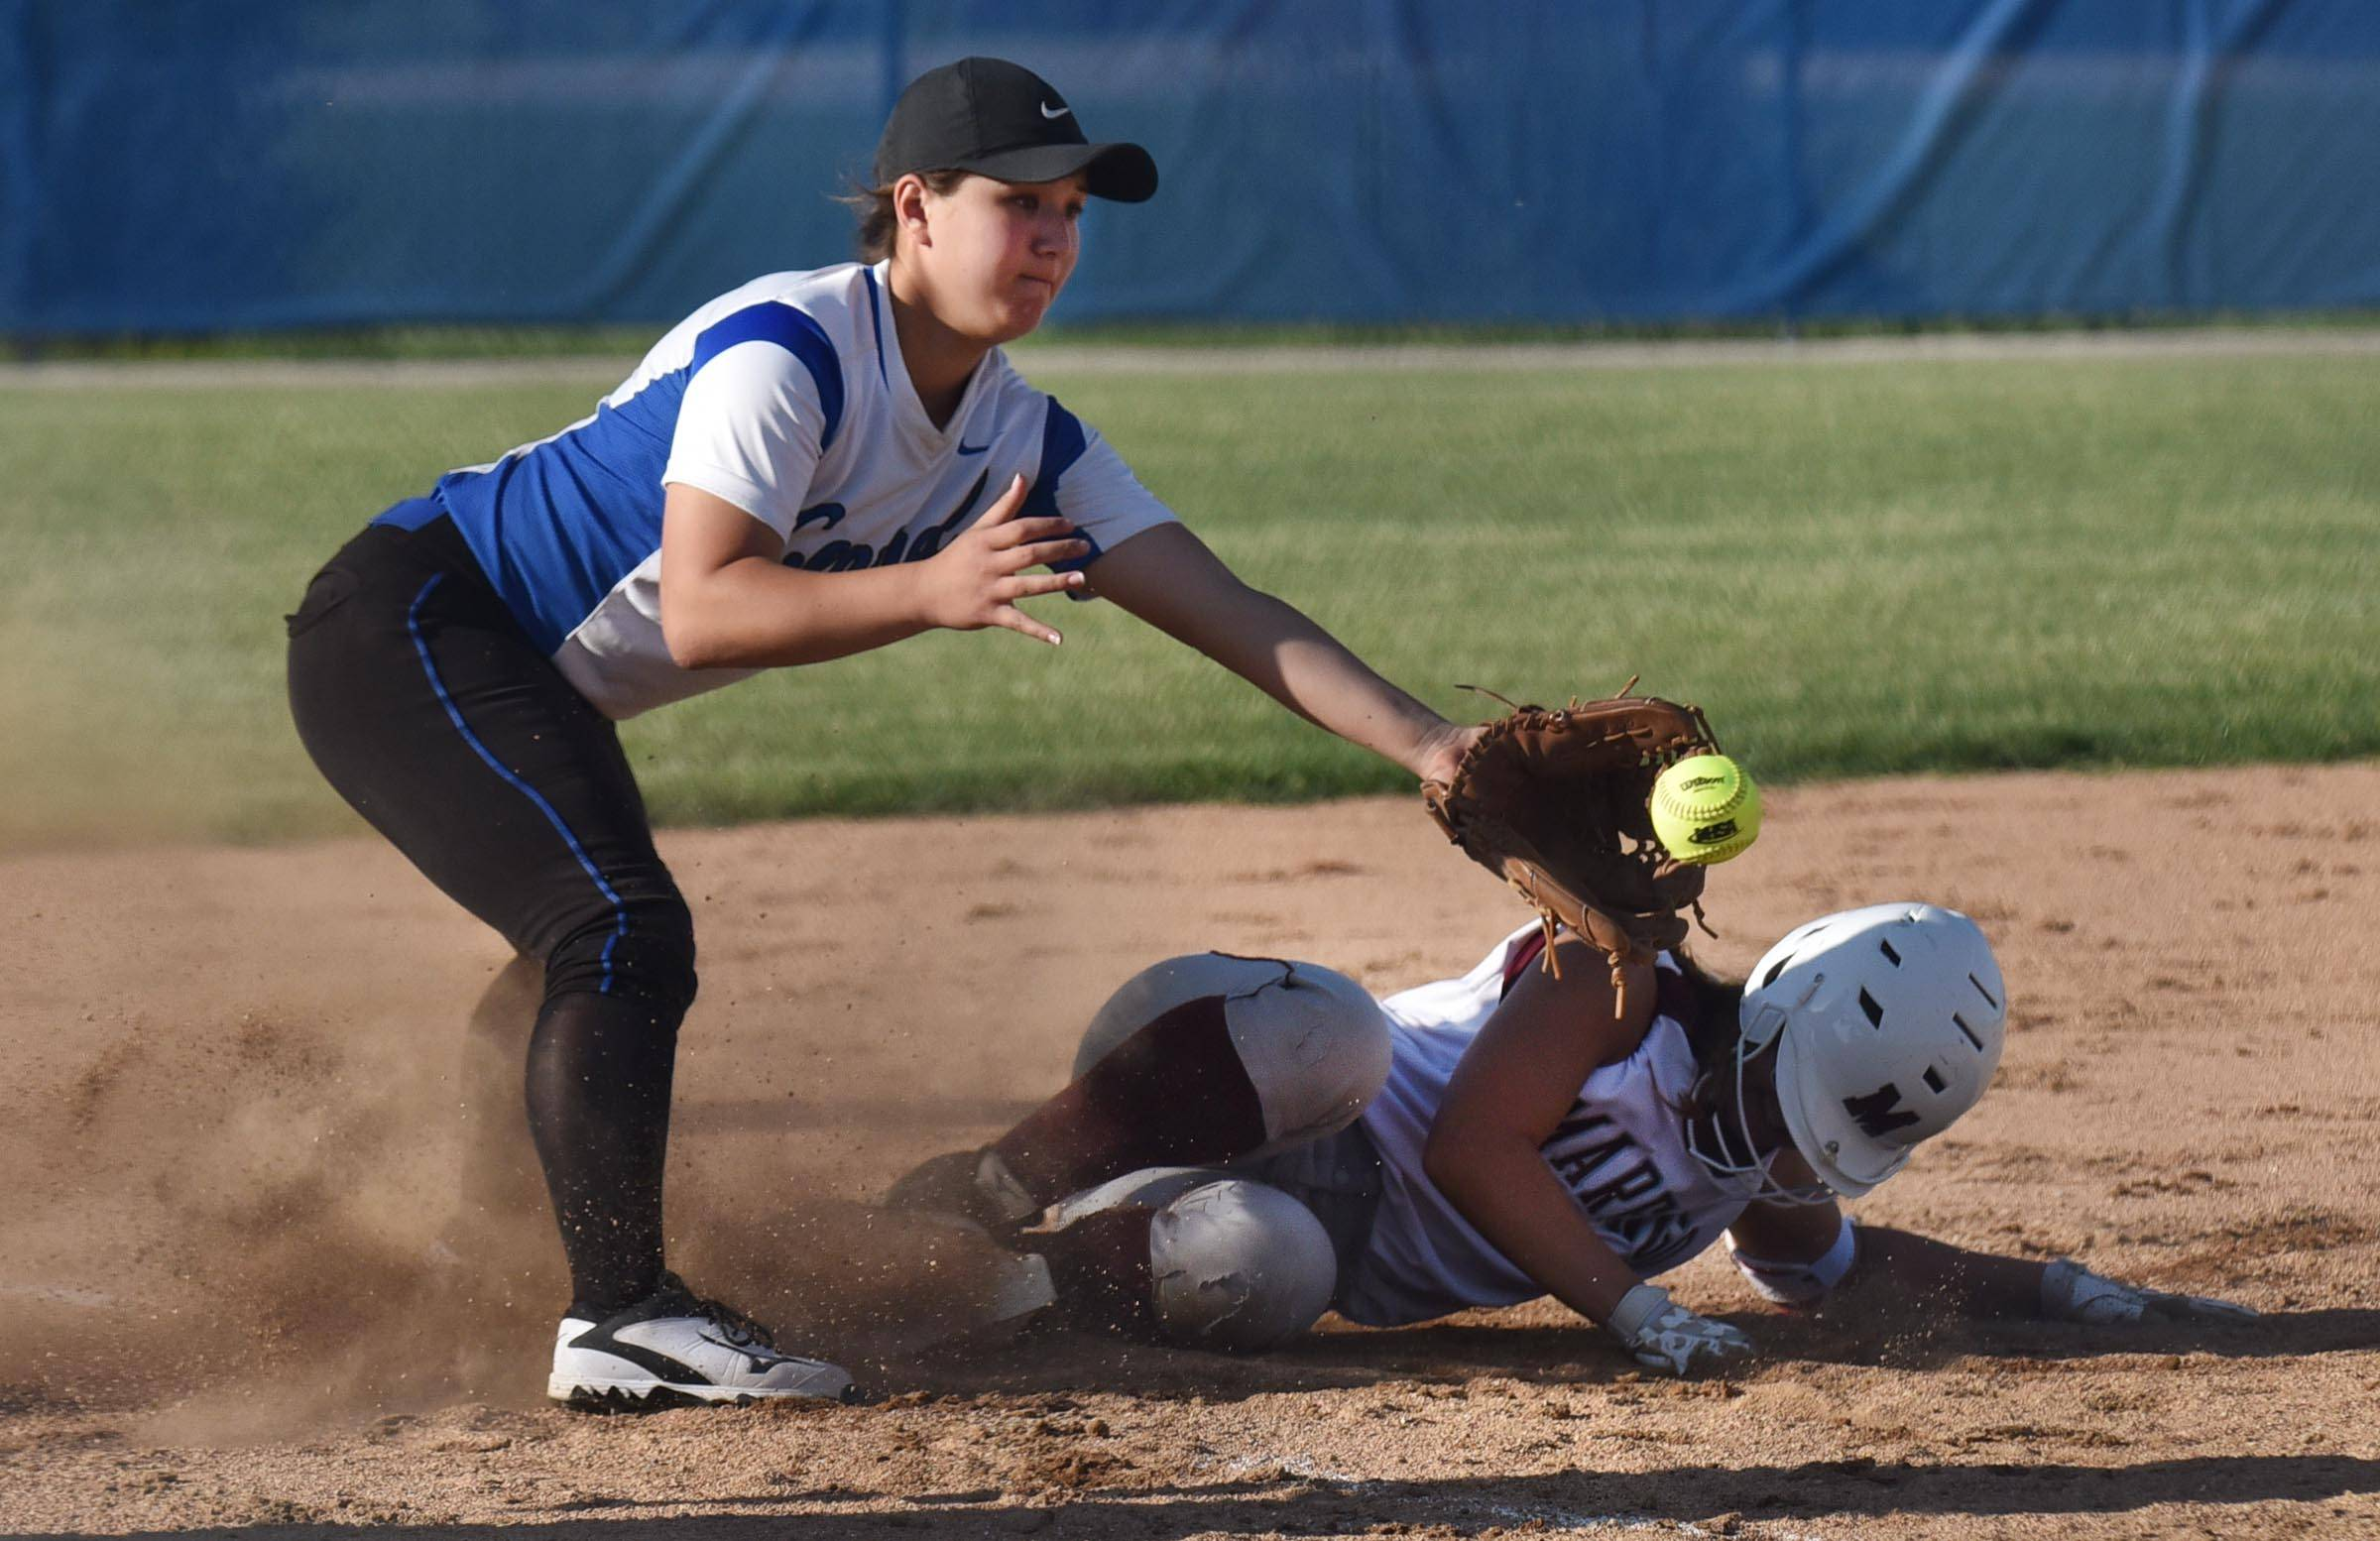 Burlington Central's Kristina Ahlers reaches for the ball to tag Marengo's Susannah Nawrot Wednesday in the Genoa-Kingston sectional game. Nawrot was safe at third and then scored the only run of the game.